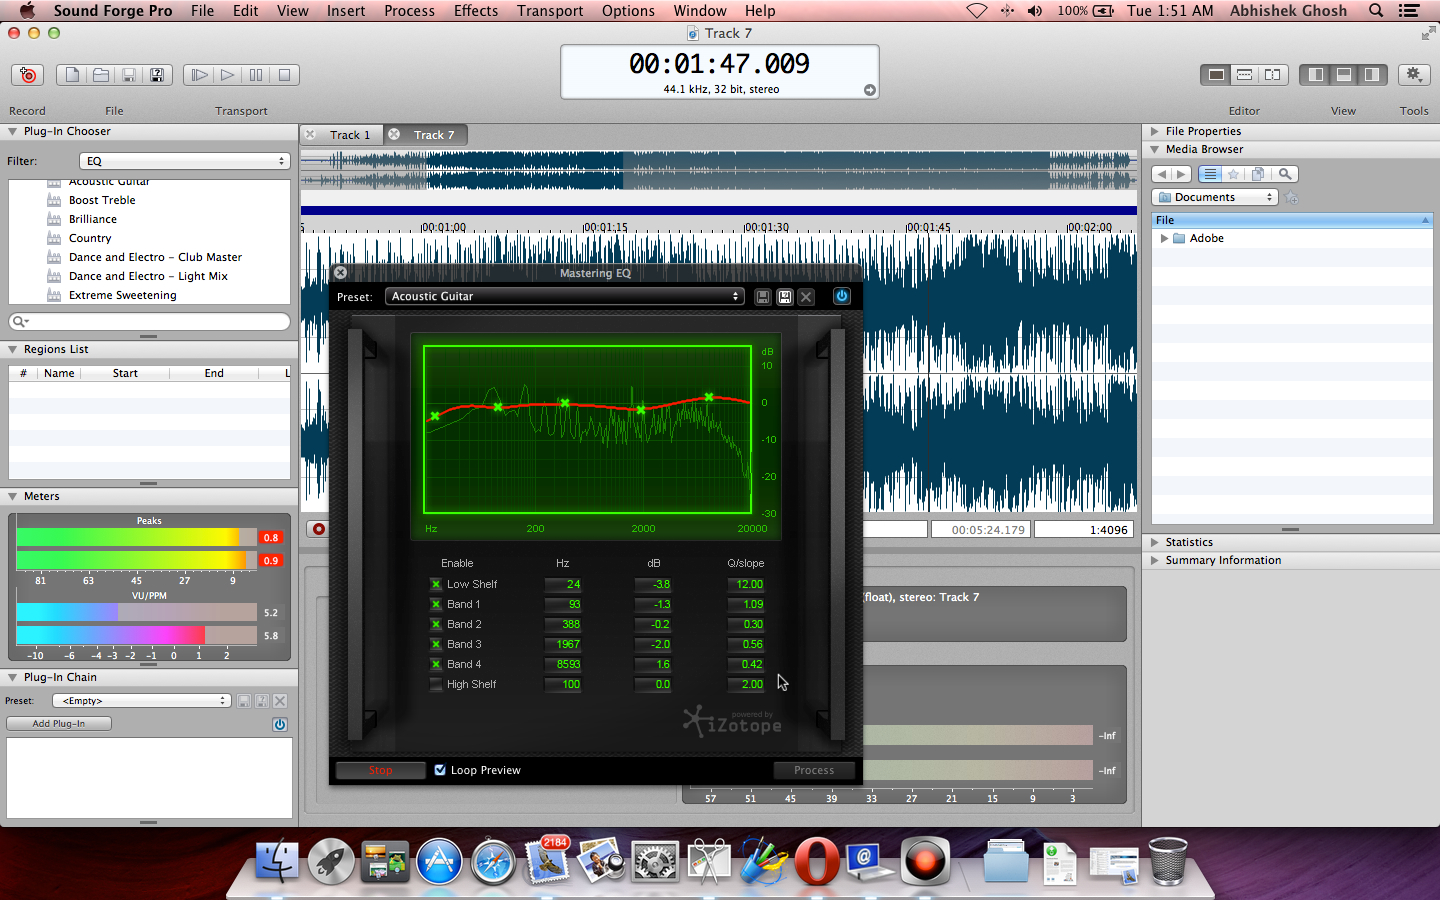 Sound Forge Pro Mac Review